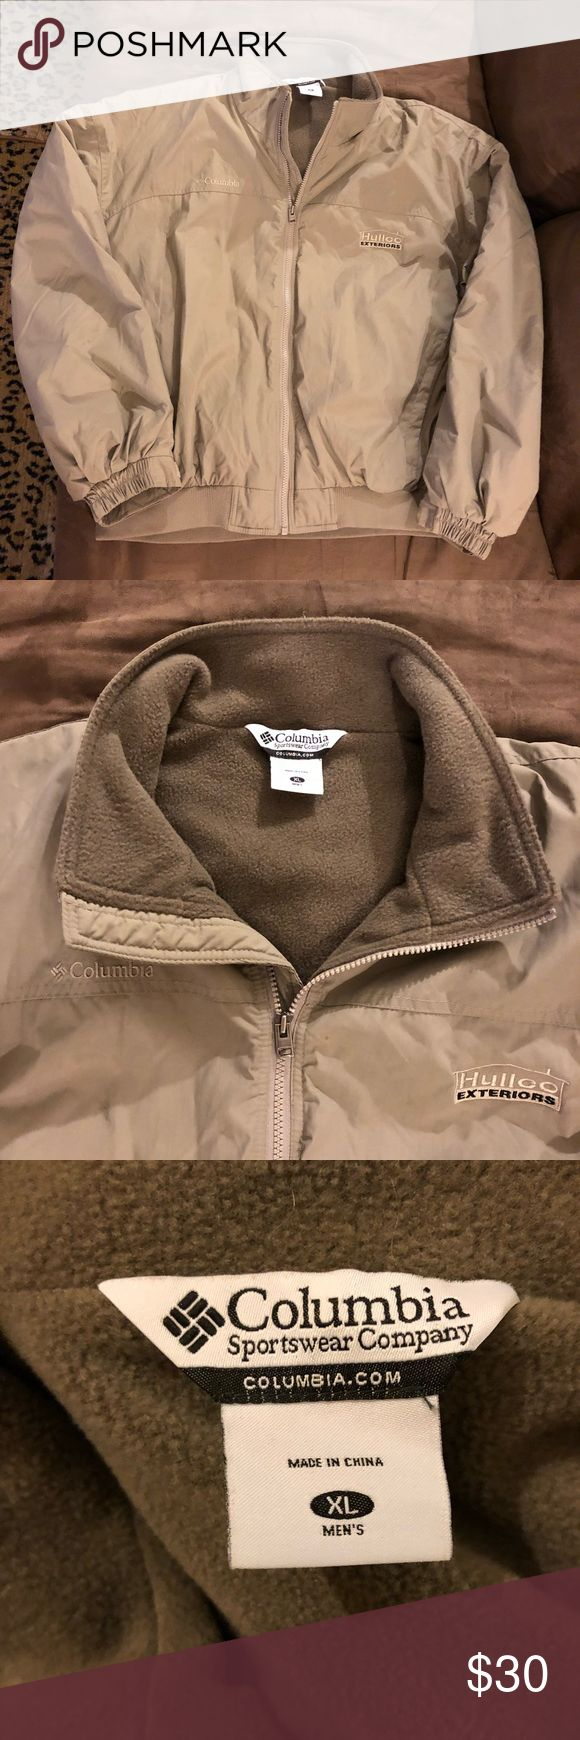 Columbia Tan Fleece Lined Bomber Jacket XL Columbia Solid Tan Fleece Lined Bomber Jacket size XL! Great condition! Please make reasonable offers and bundle! Ask questions! Columbia Jackets & Coats Bomber & Varsity